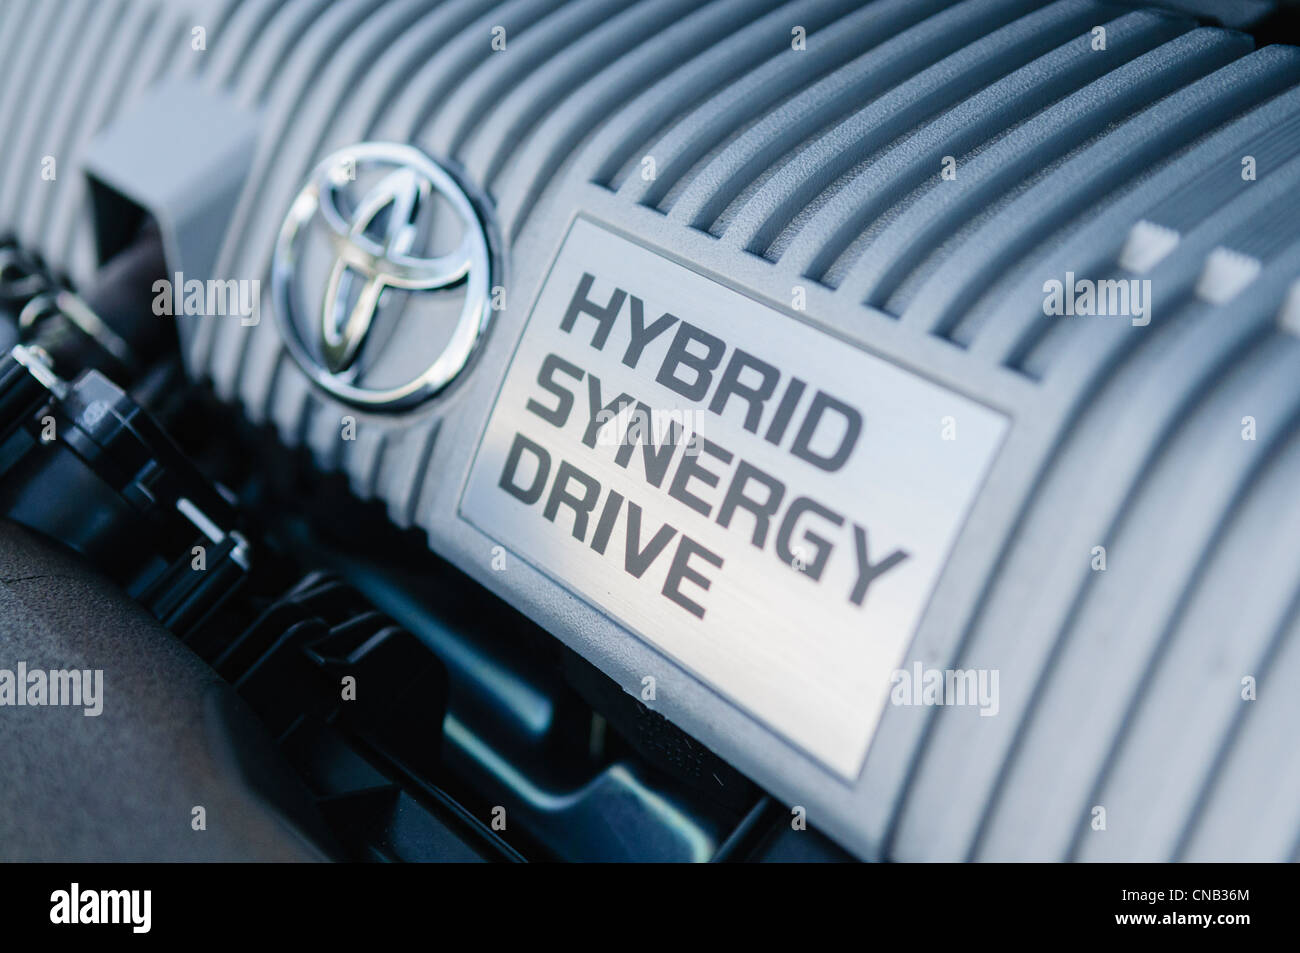 Hybrid petrol engine in a Toyota Prius - Stock Image